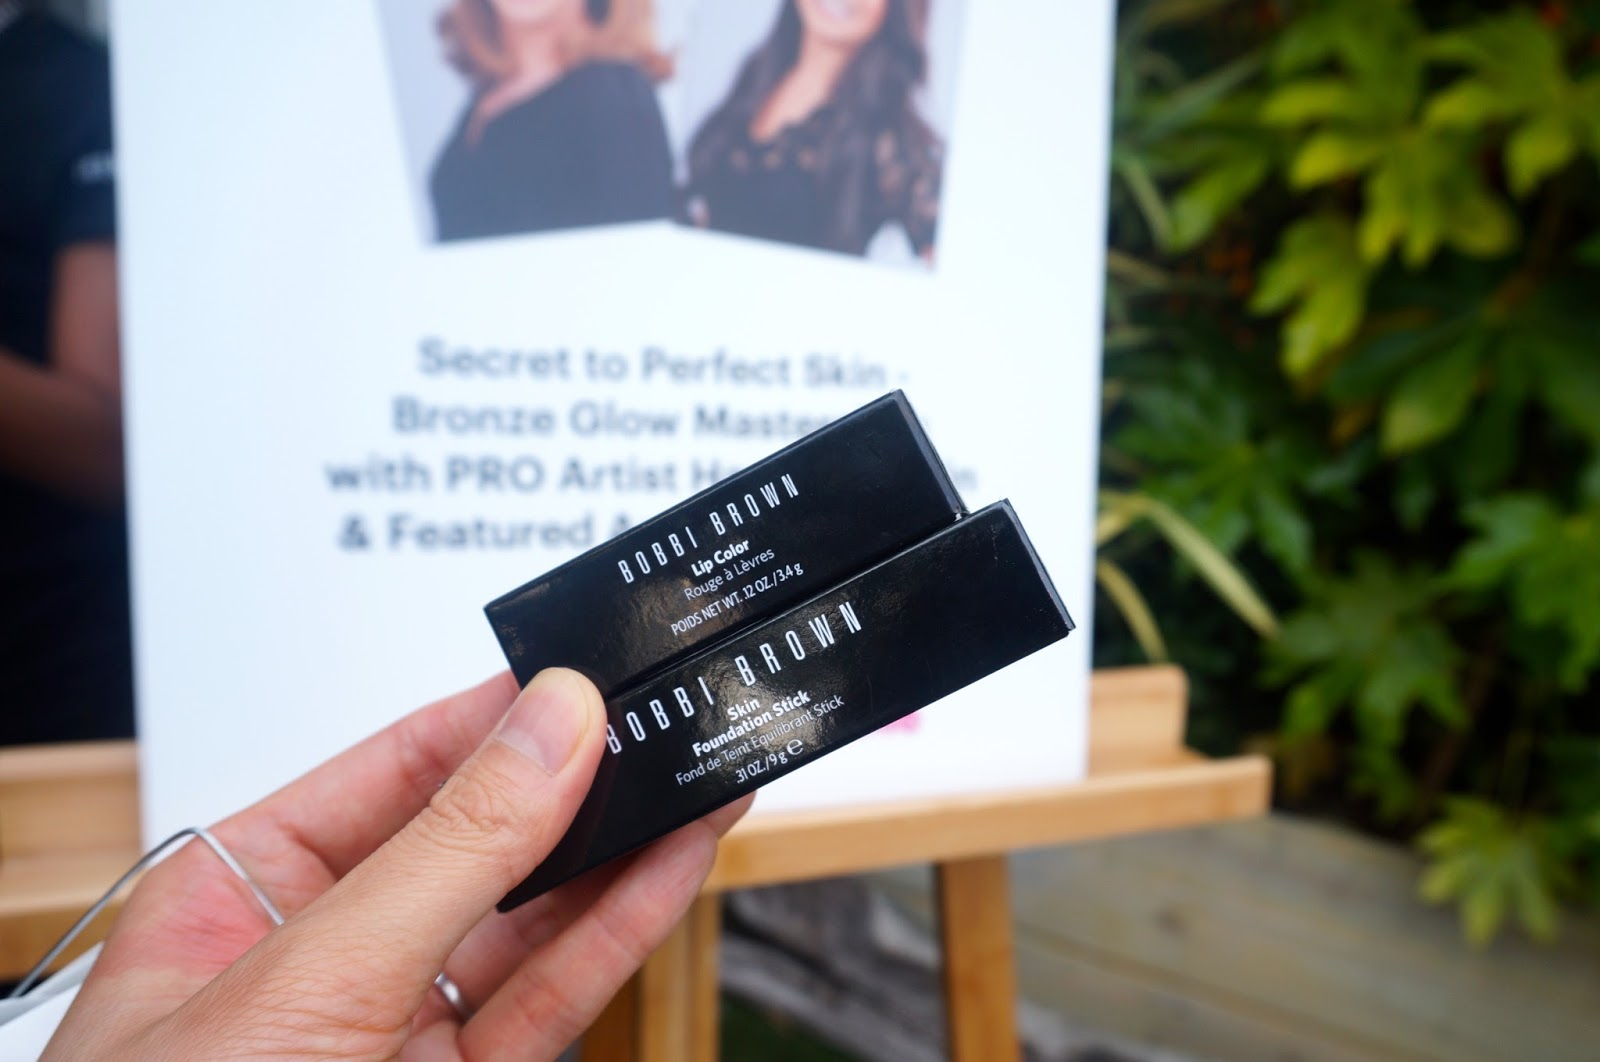 Bobbi Brown Secret to Perfect Skin Masterclass